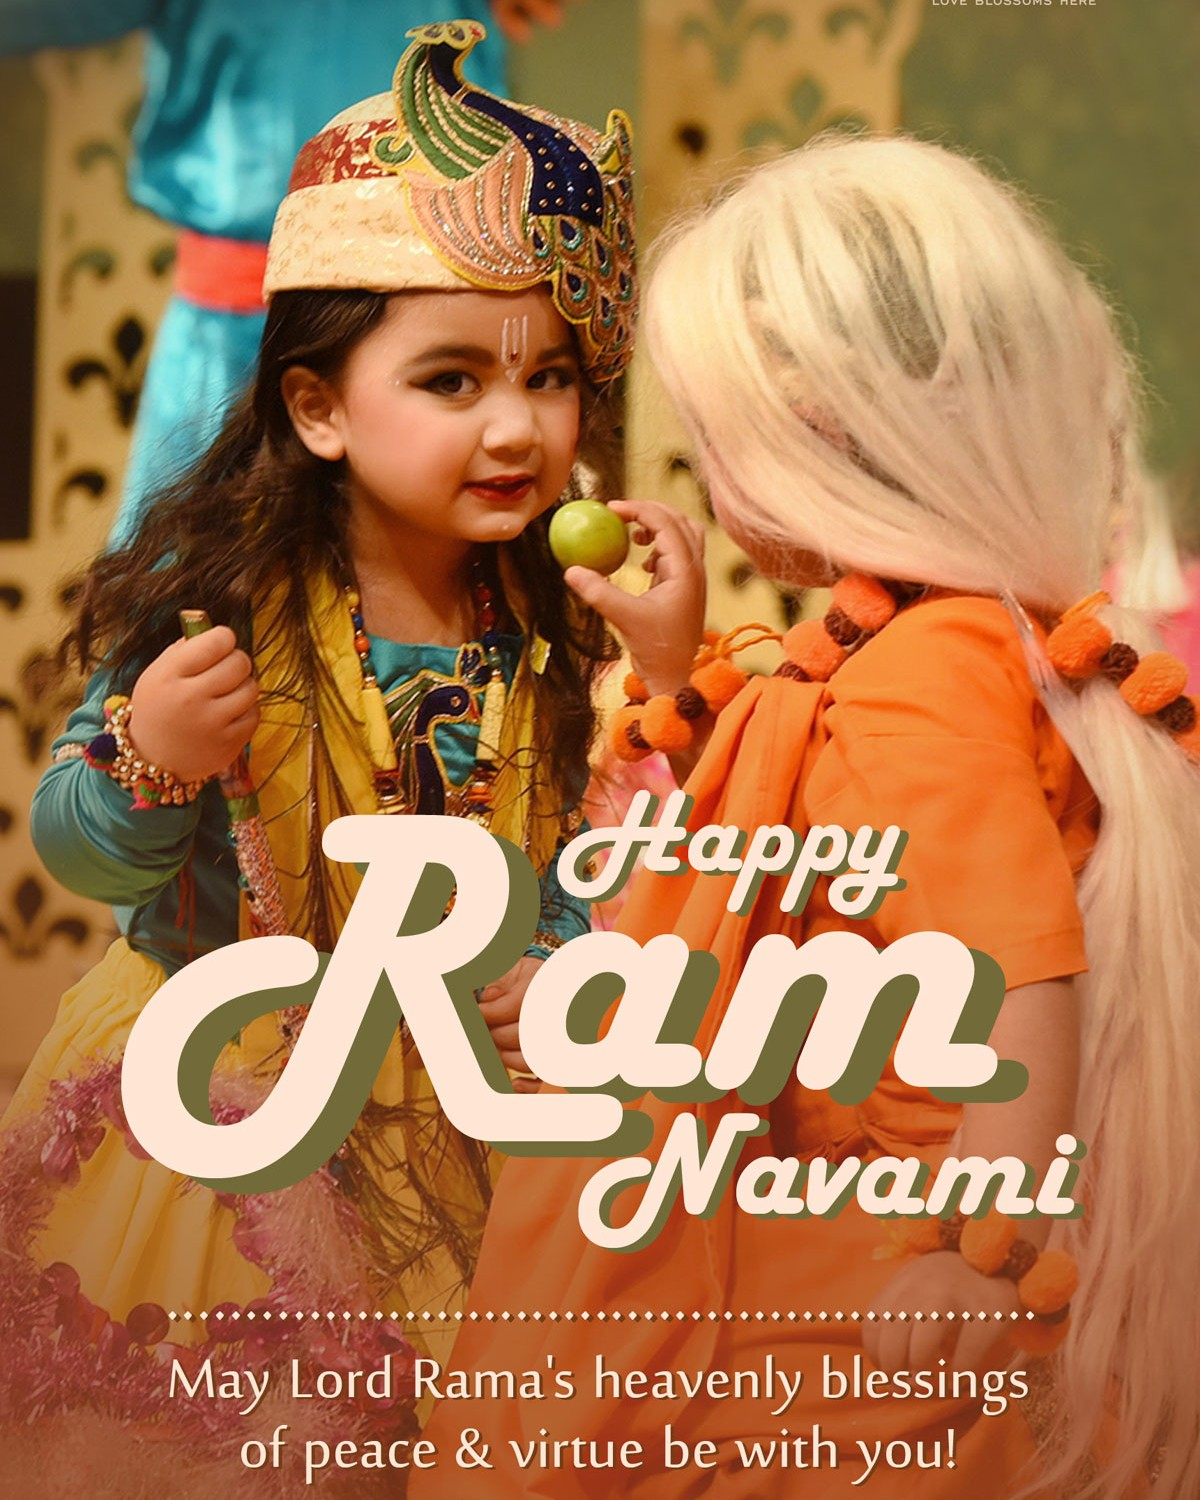 MAY LORD RAMA BLESS YOU & YOUR FAMILY WITH ETERNAL HAPPINESS